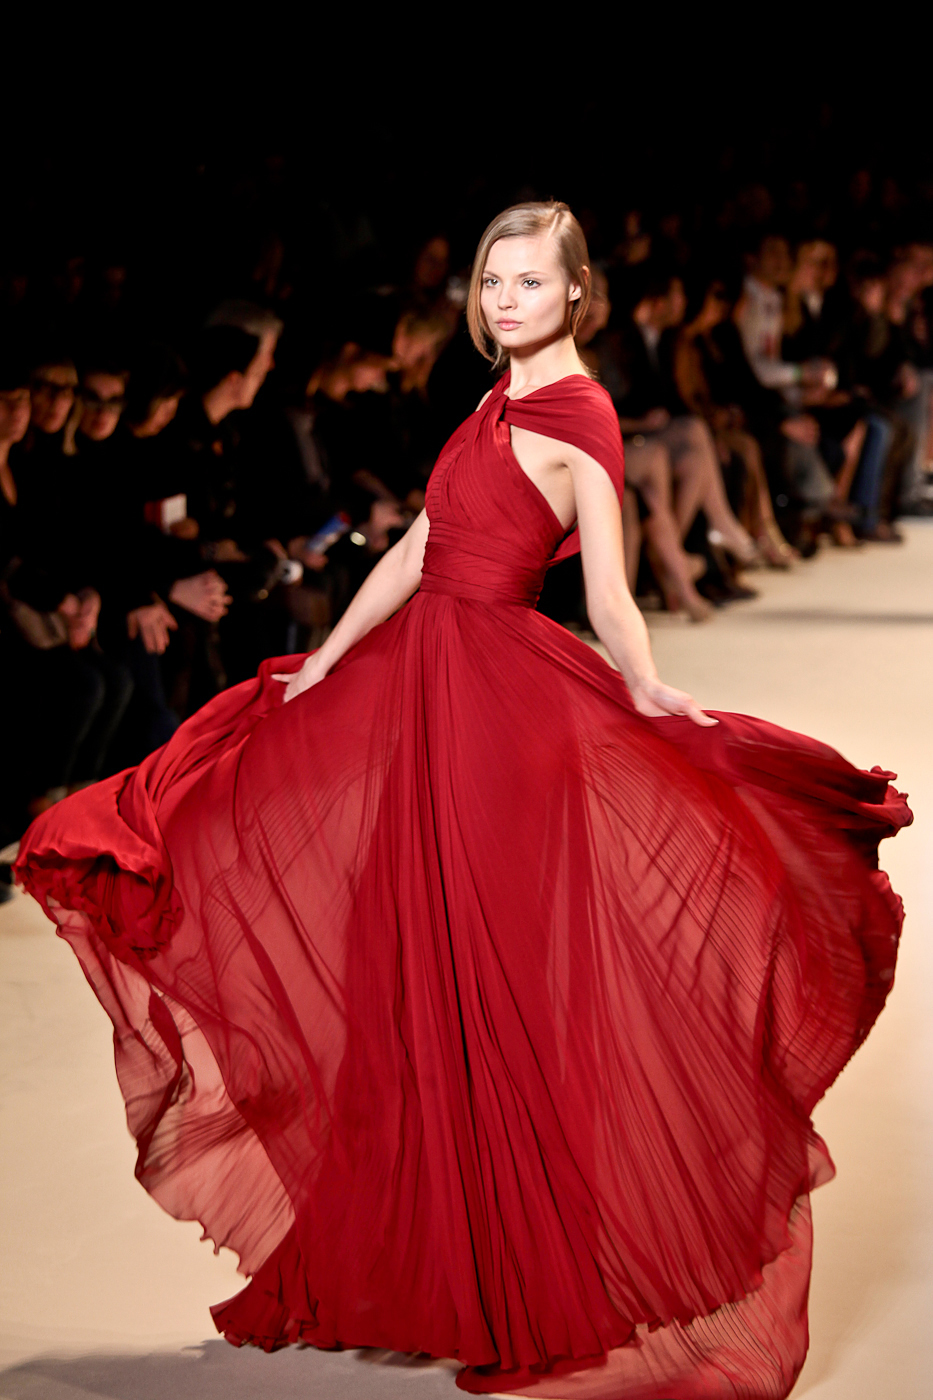 Paris fashion week wikipedia for Haute couture wikipedia